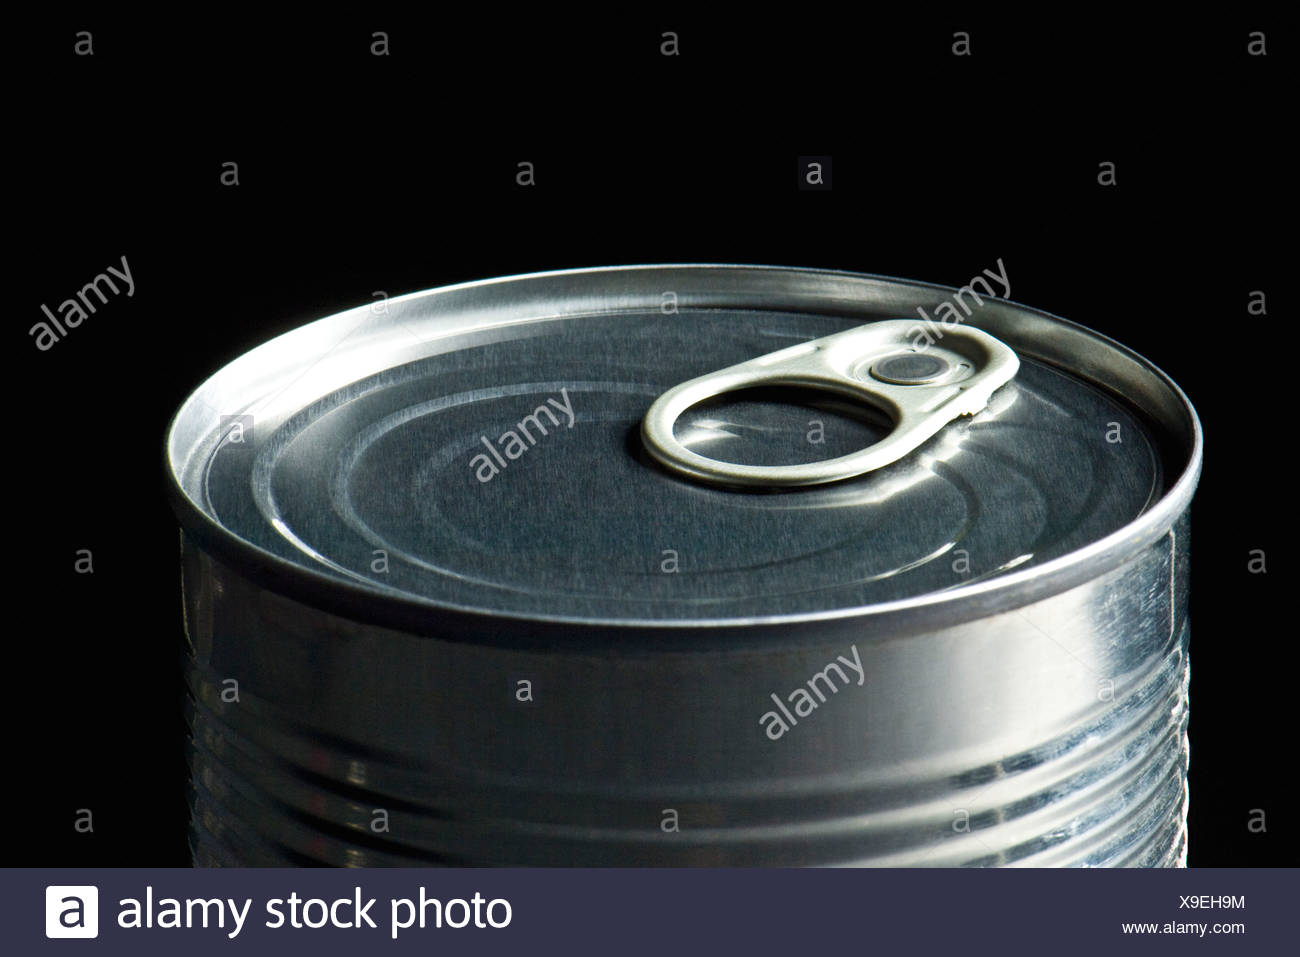 Can of food - Stock Image